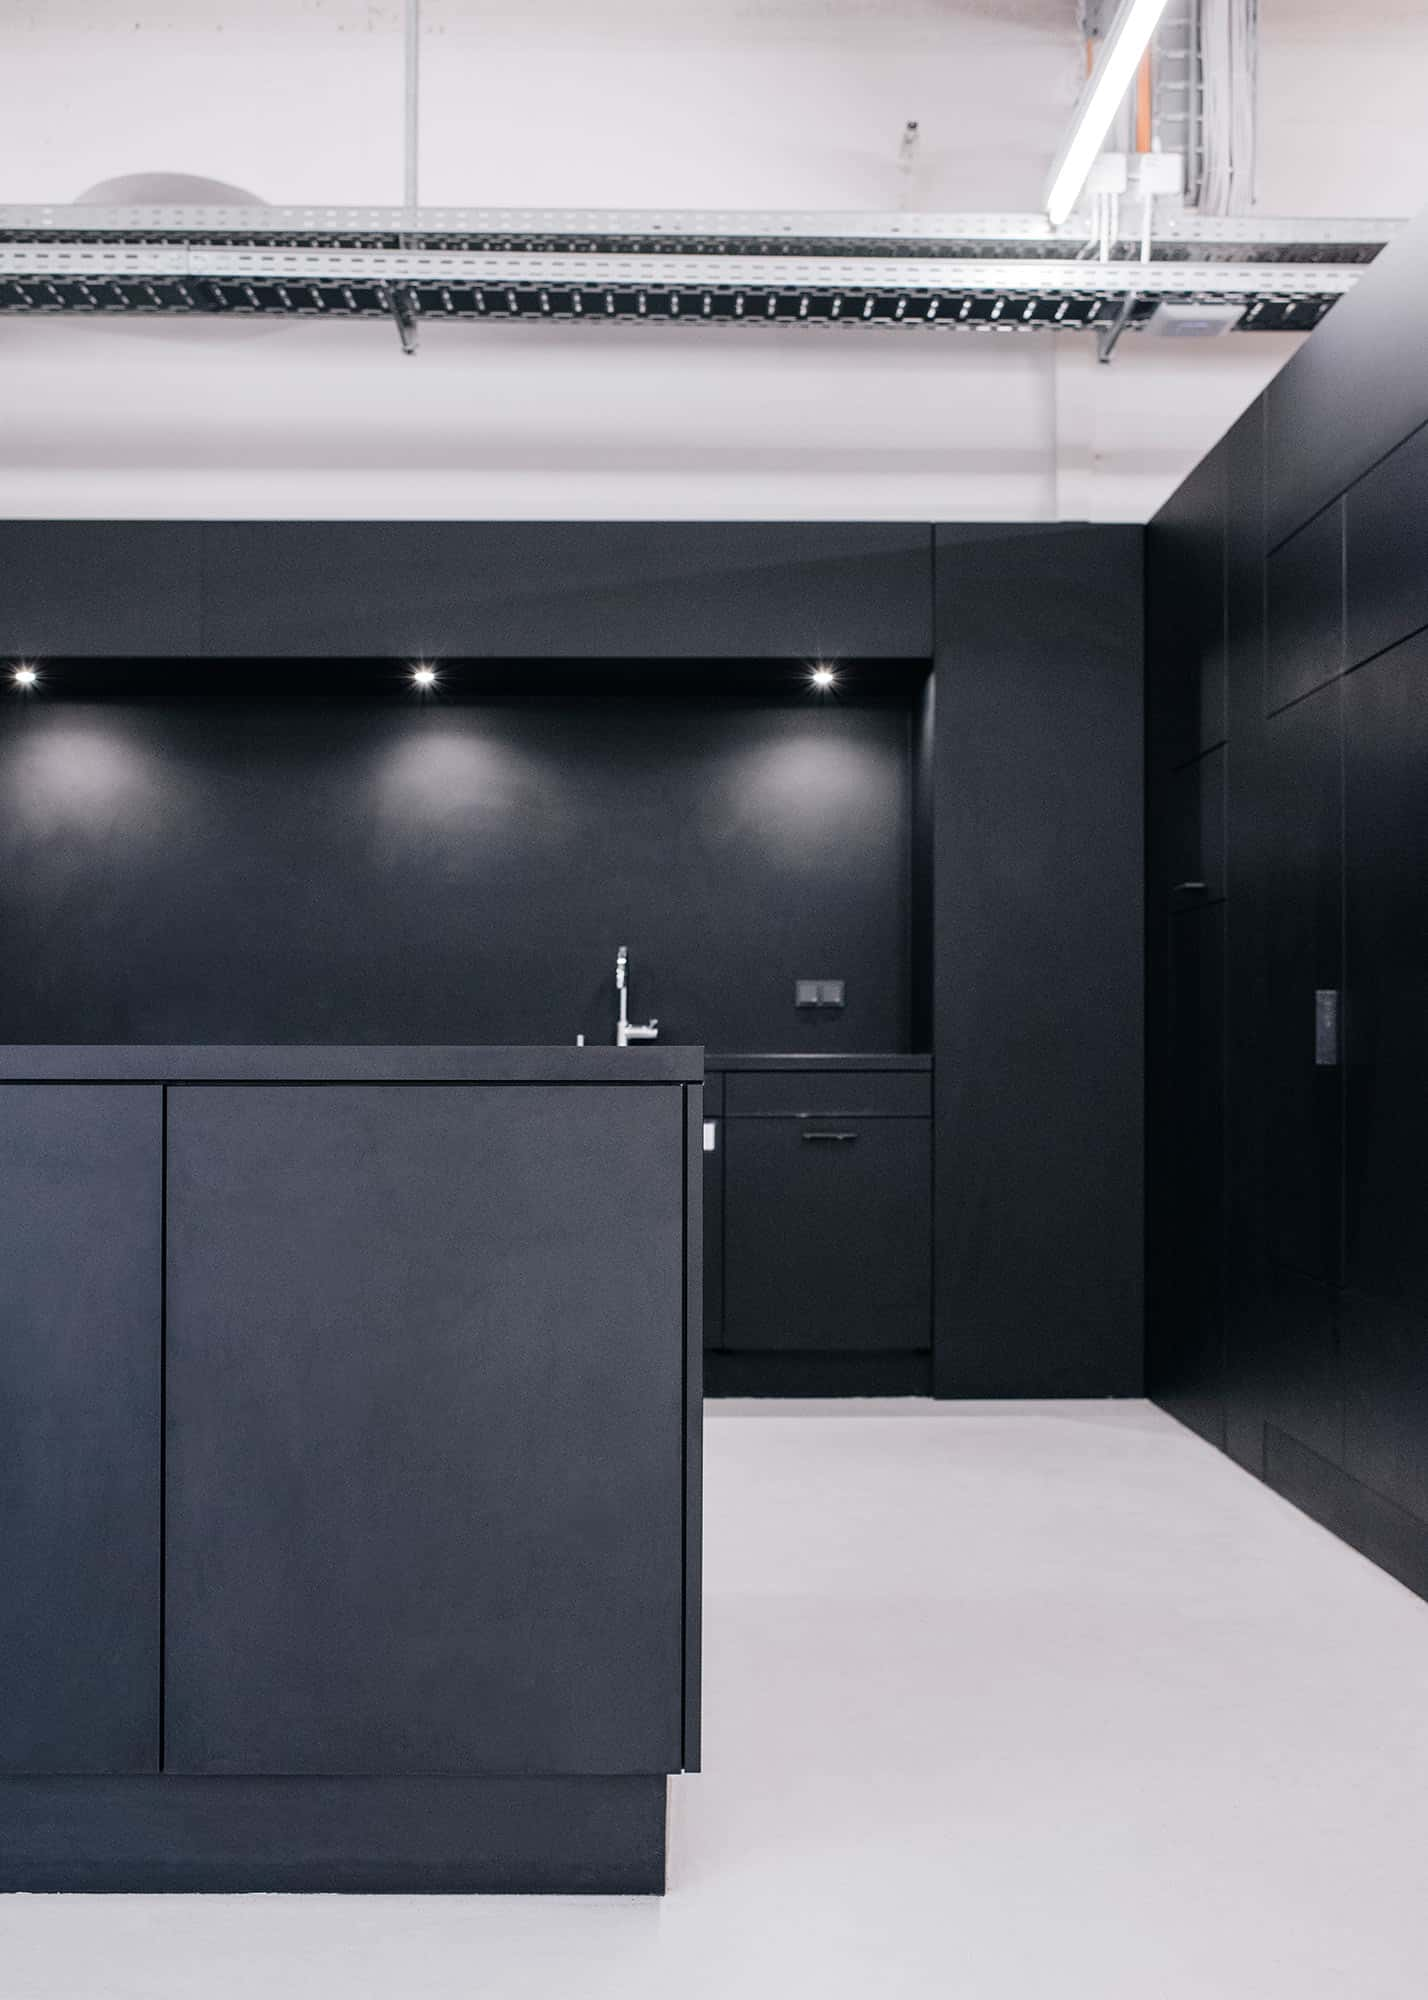 STUDIO FRICK FREELETICS